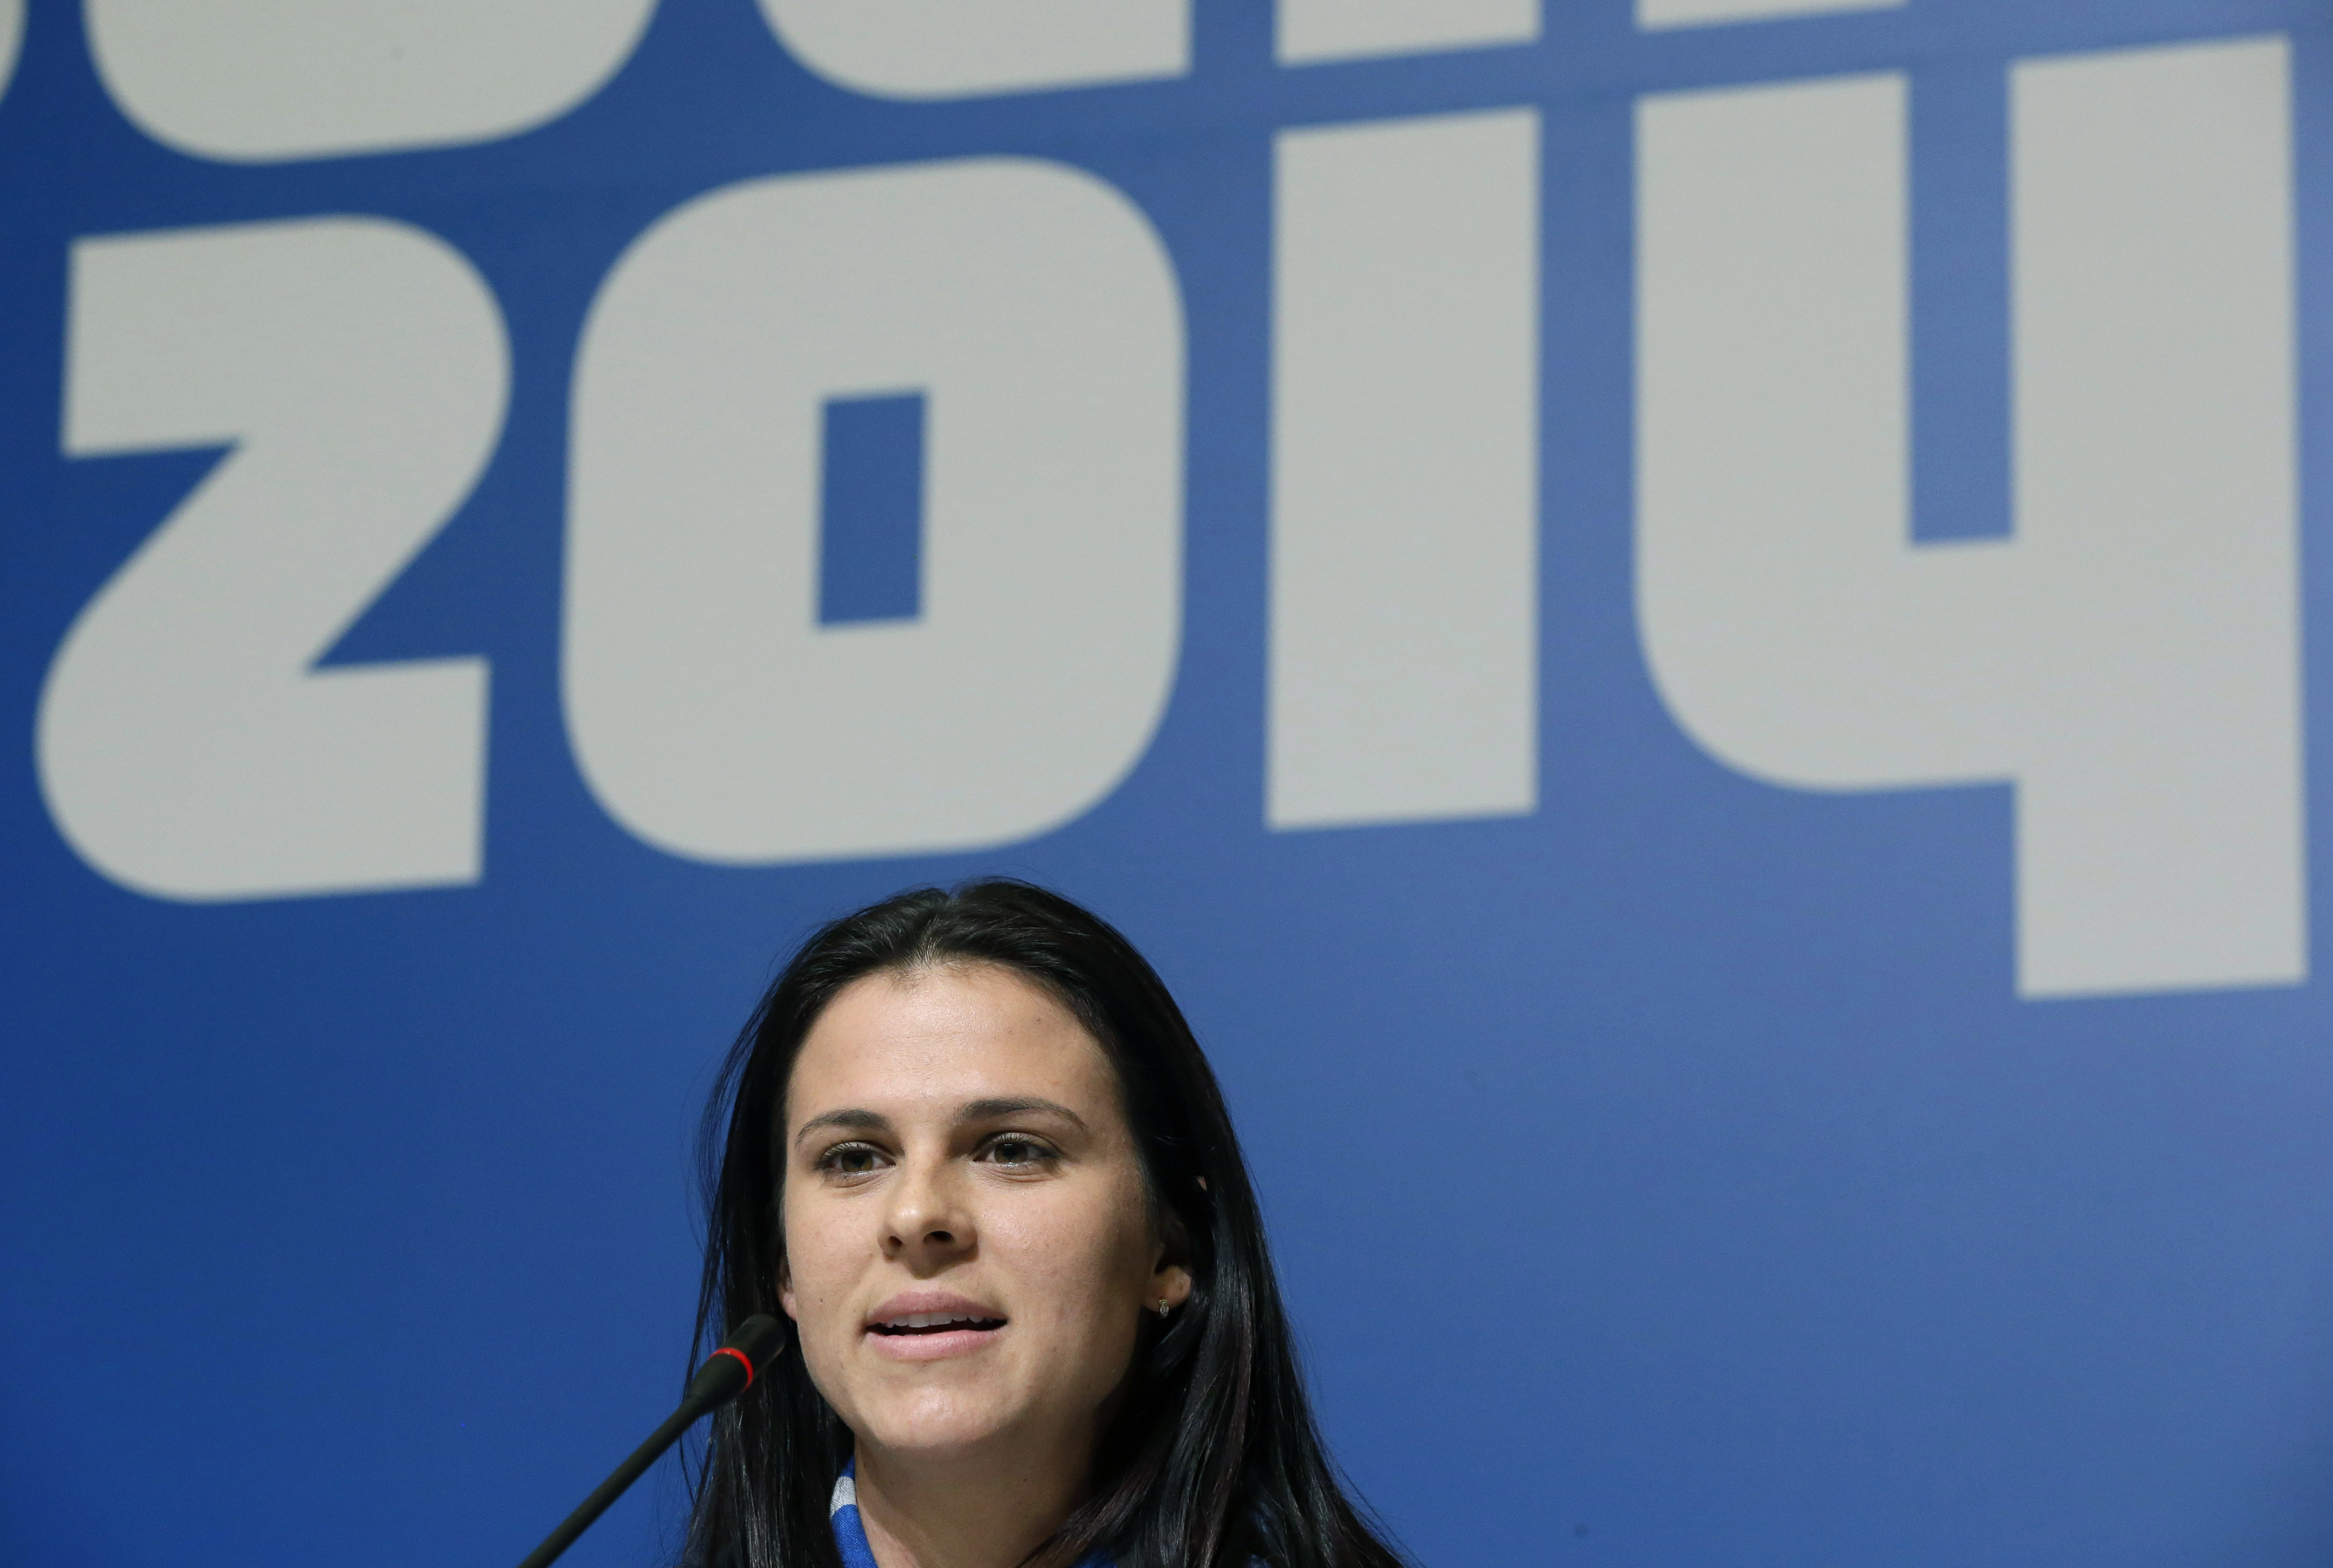 U.S. speedskater Brittany Bowe speaks during a 2014 Winter Olympics news conference, Thursday, Feb. 6, 2014, in Sochi, Russia. (AP Photo/Patrick Semansky)